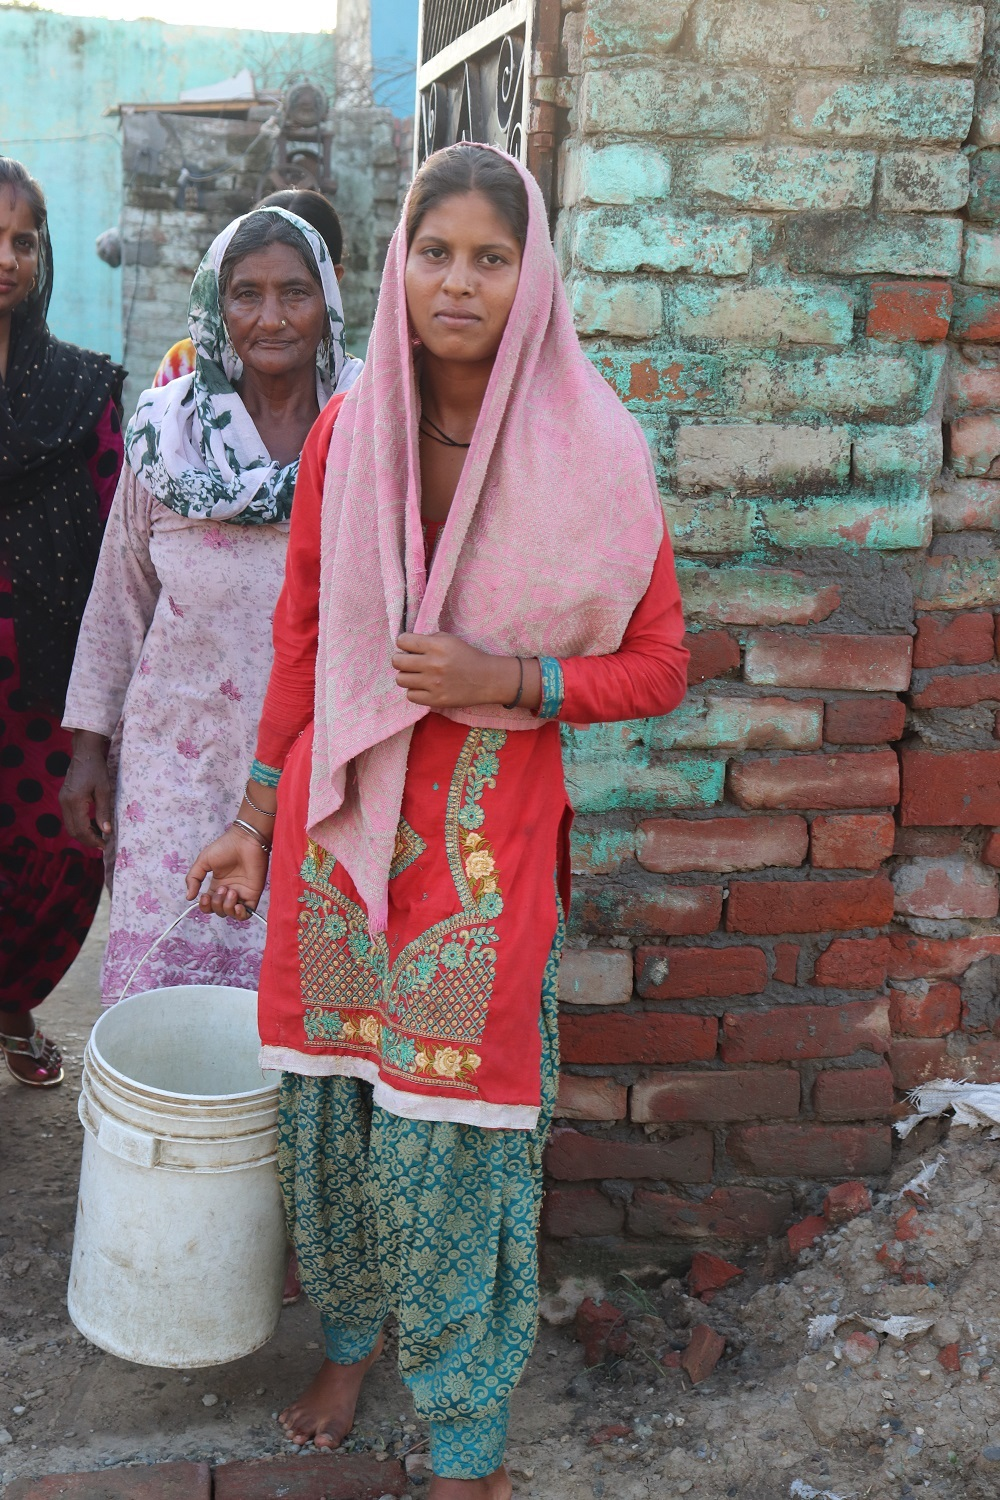 Image 3 Women with Bucket Govind Singh Mohalla